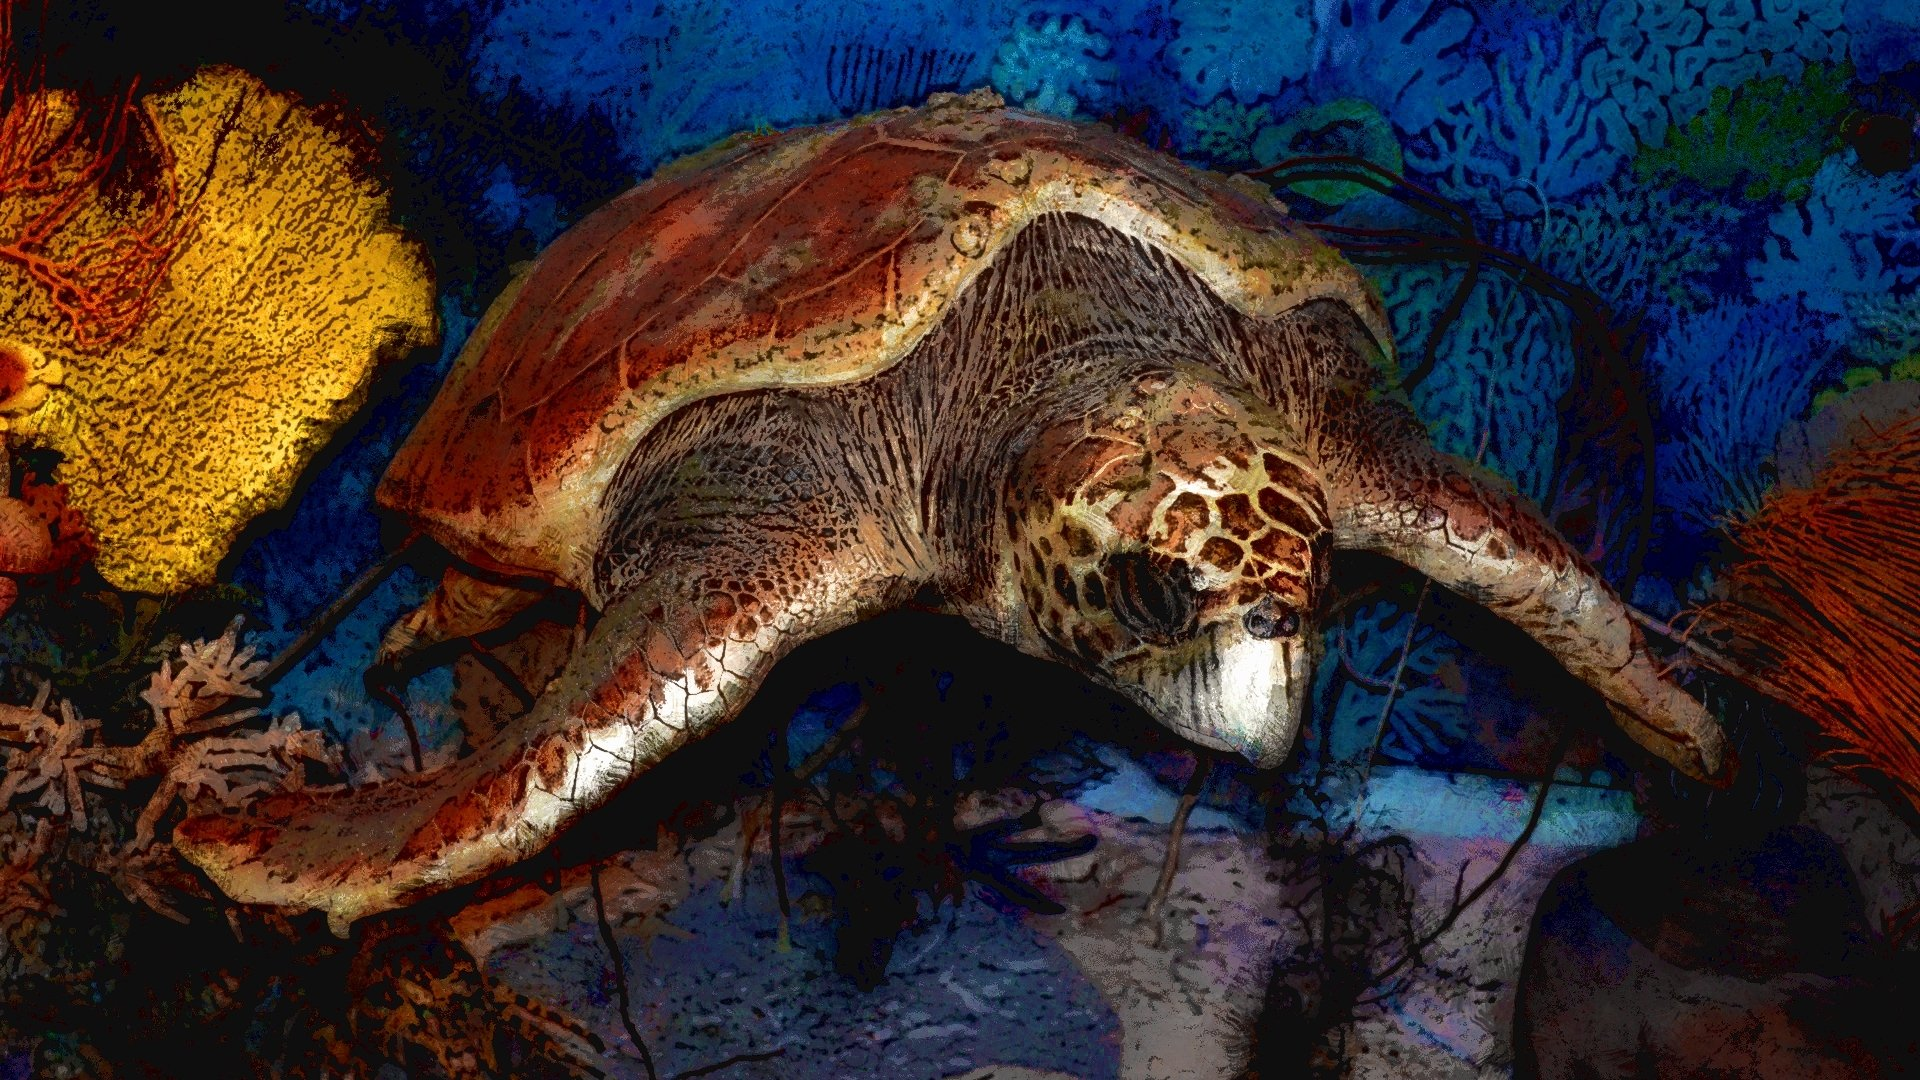 Animal - Turtle  Artwork Artistic Illustration Wallpaper